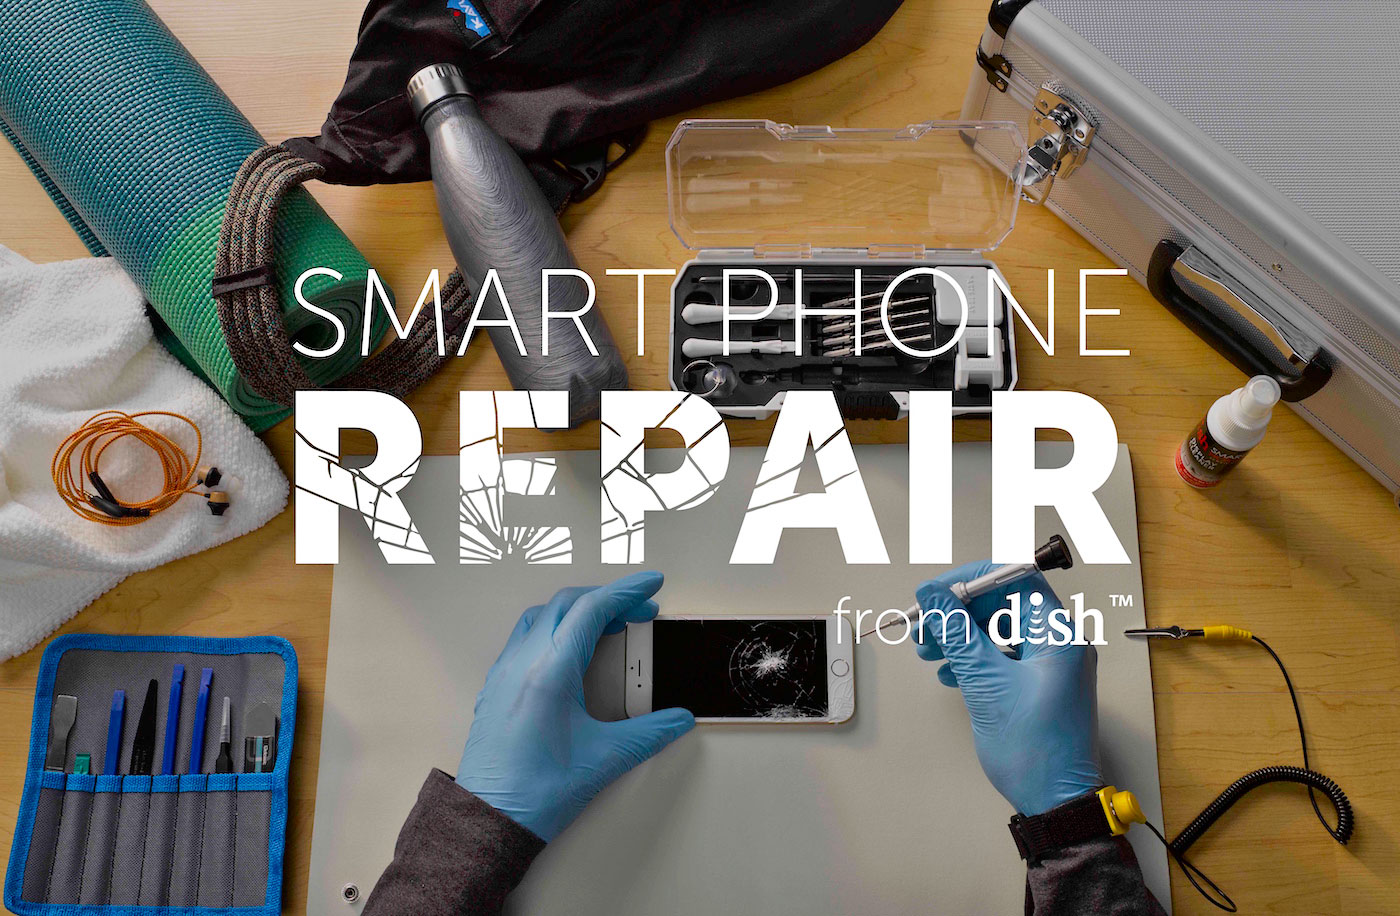 Dish gets into... the iPhone repair business?